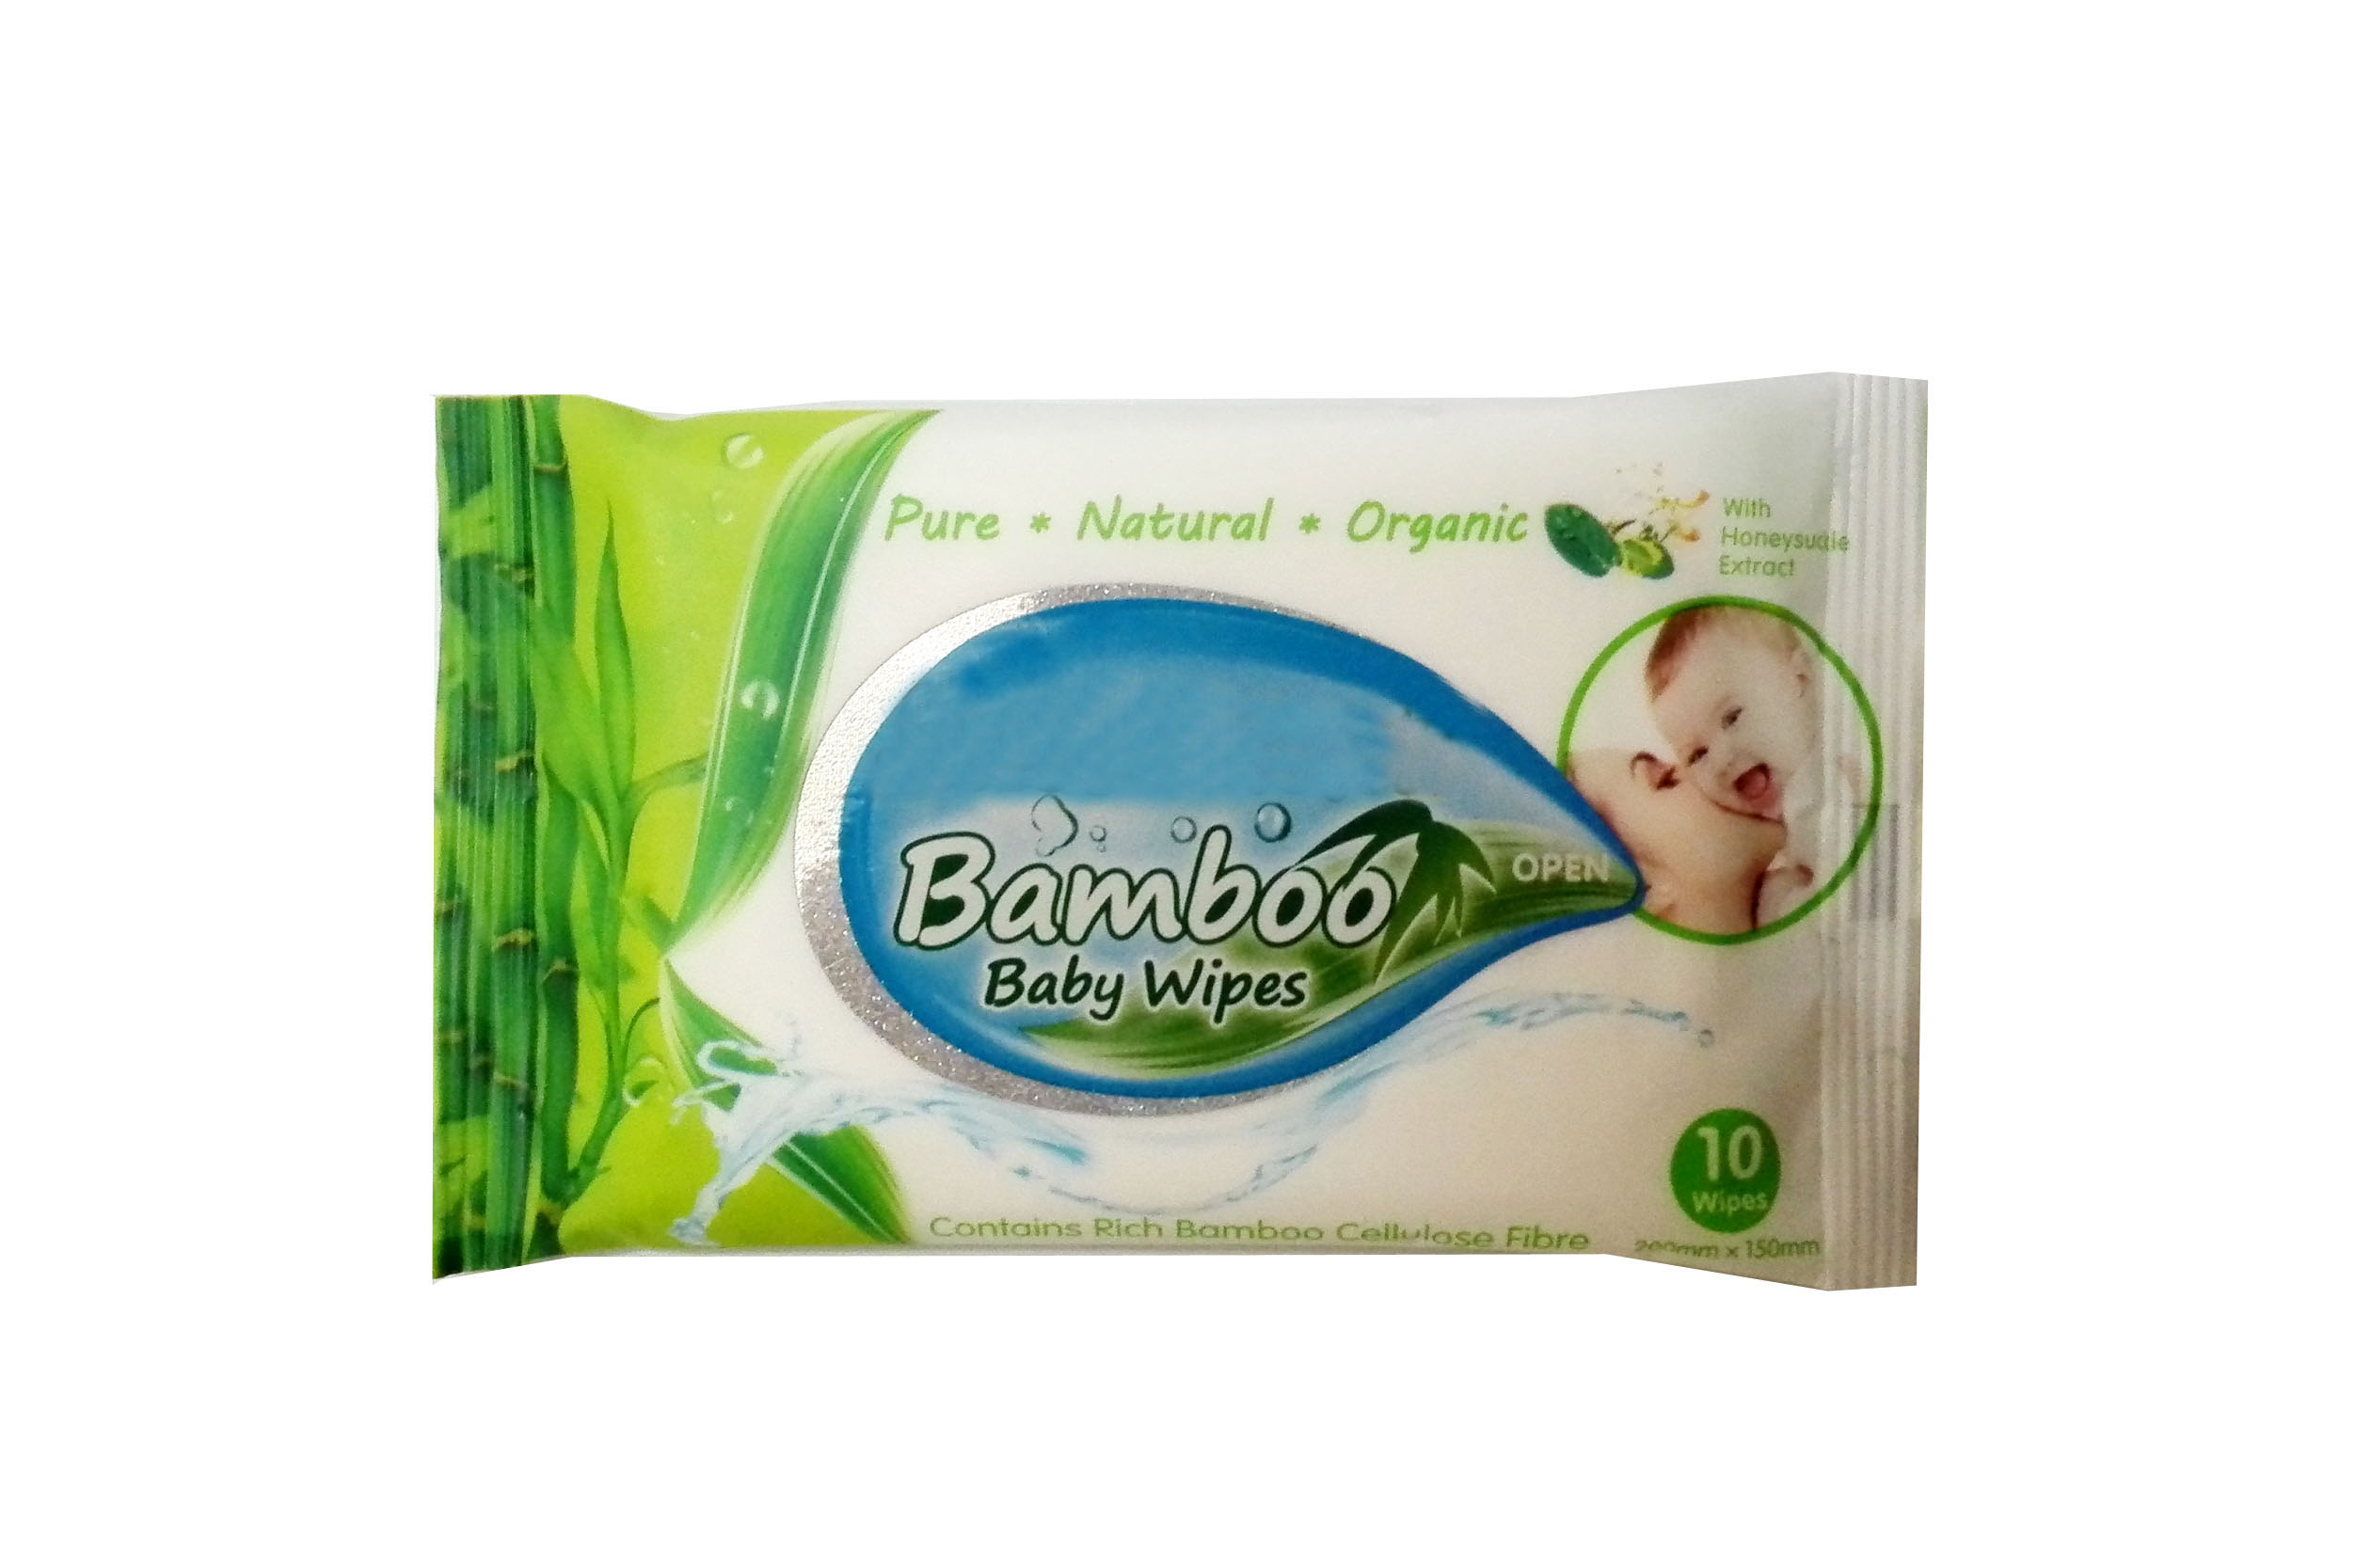 Bamboo baby wipes of 10pcs